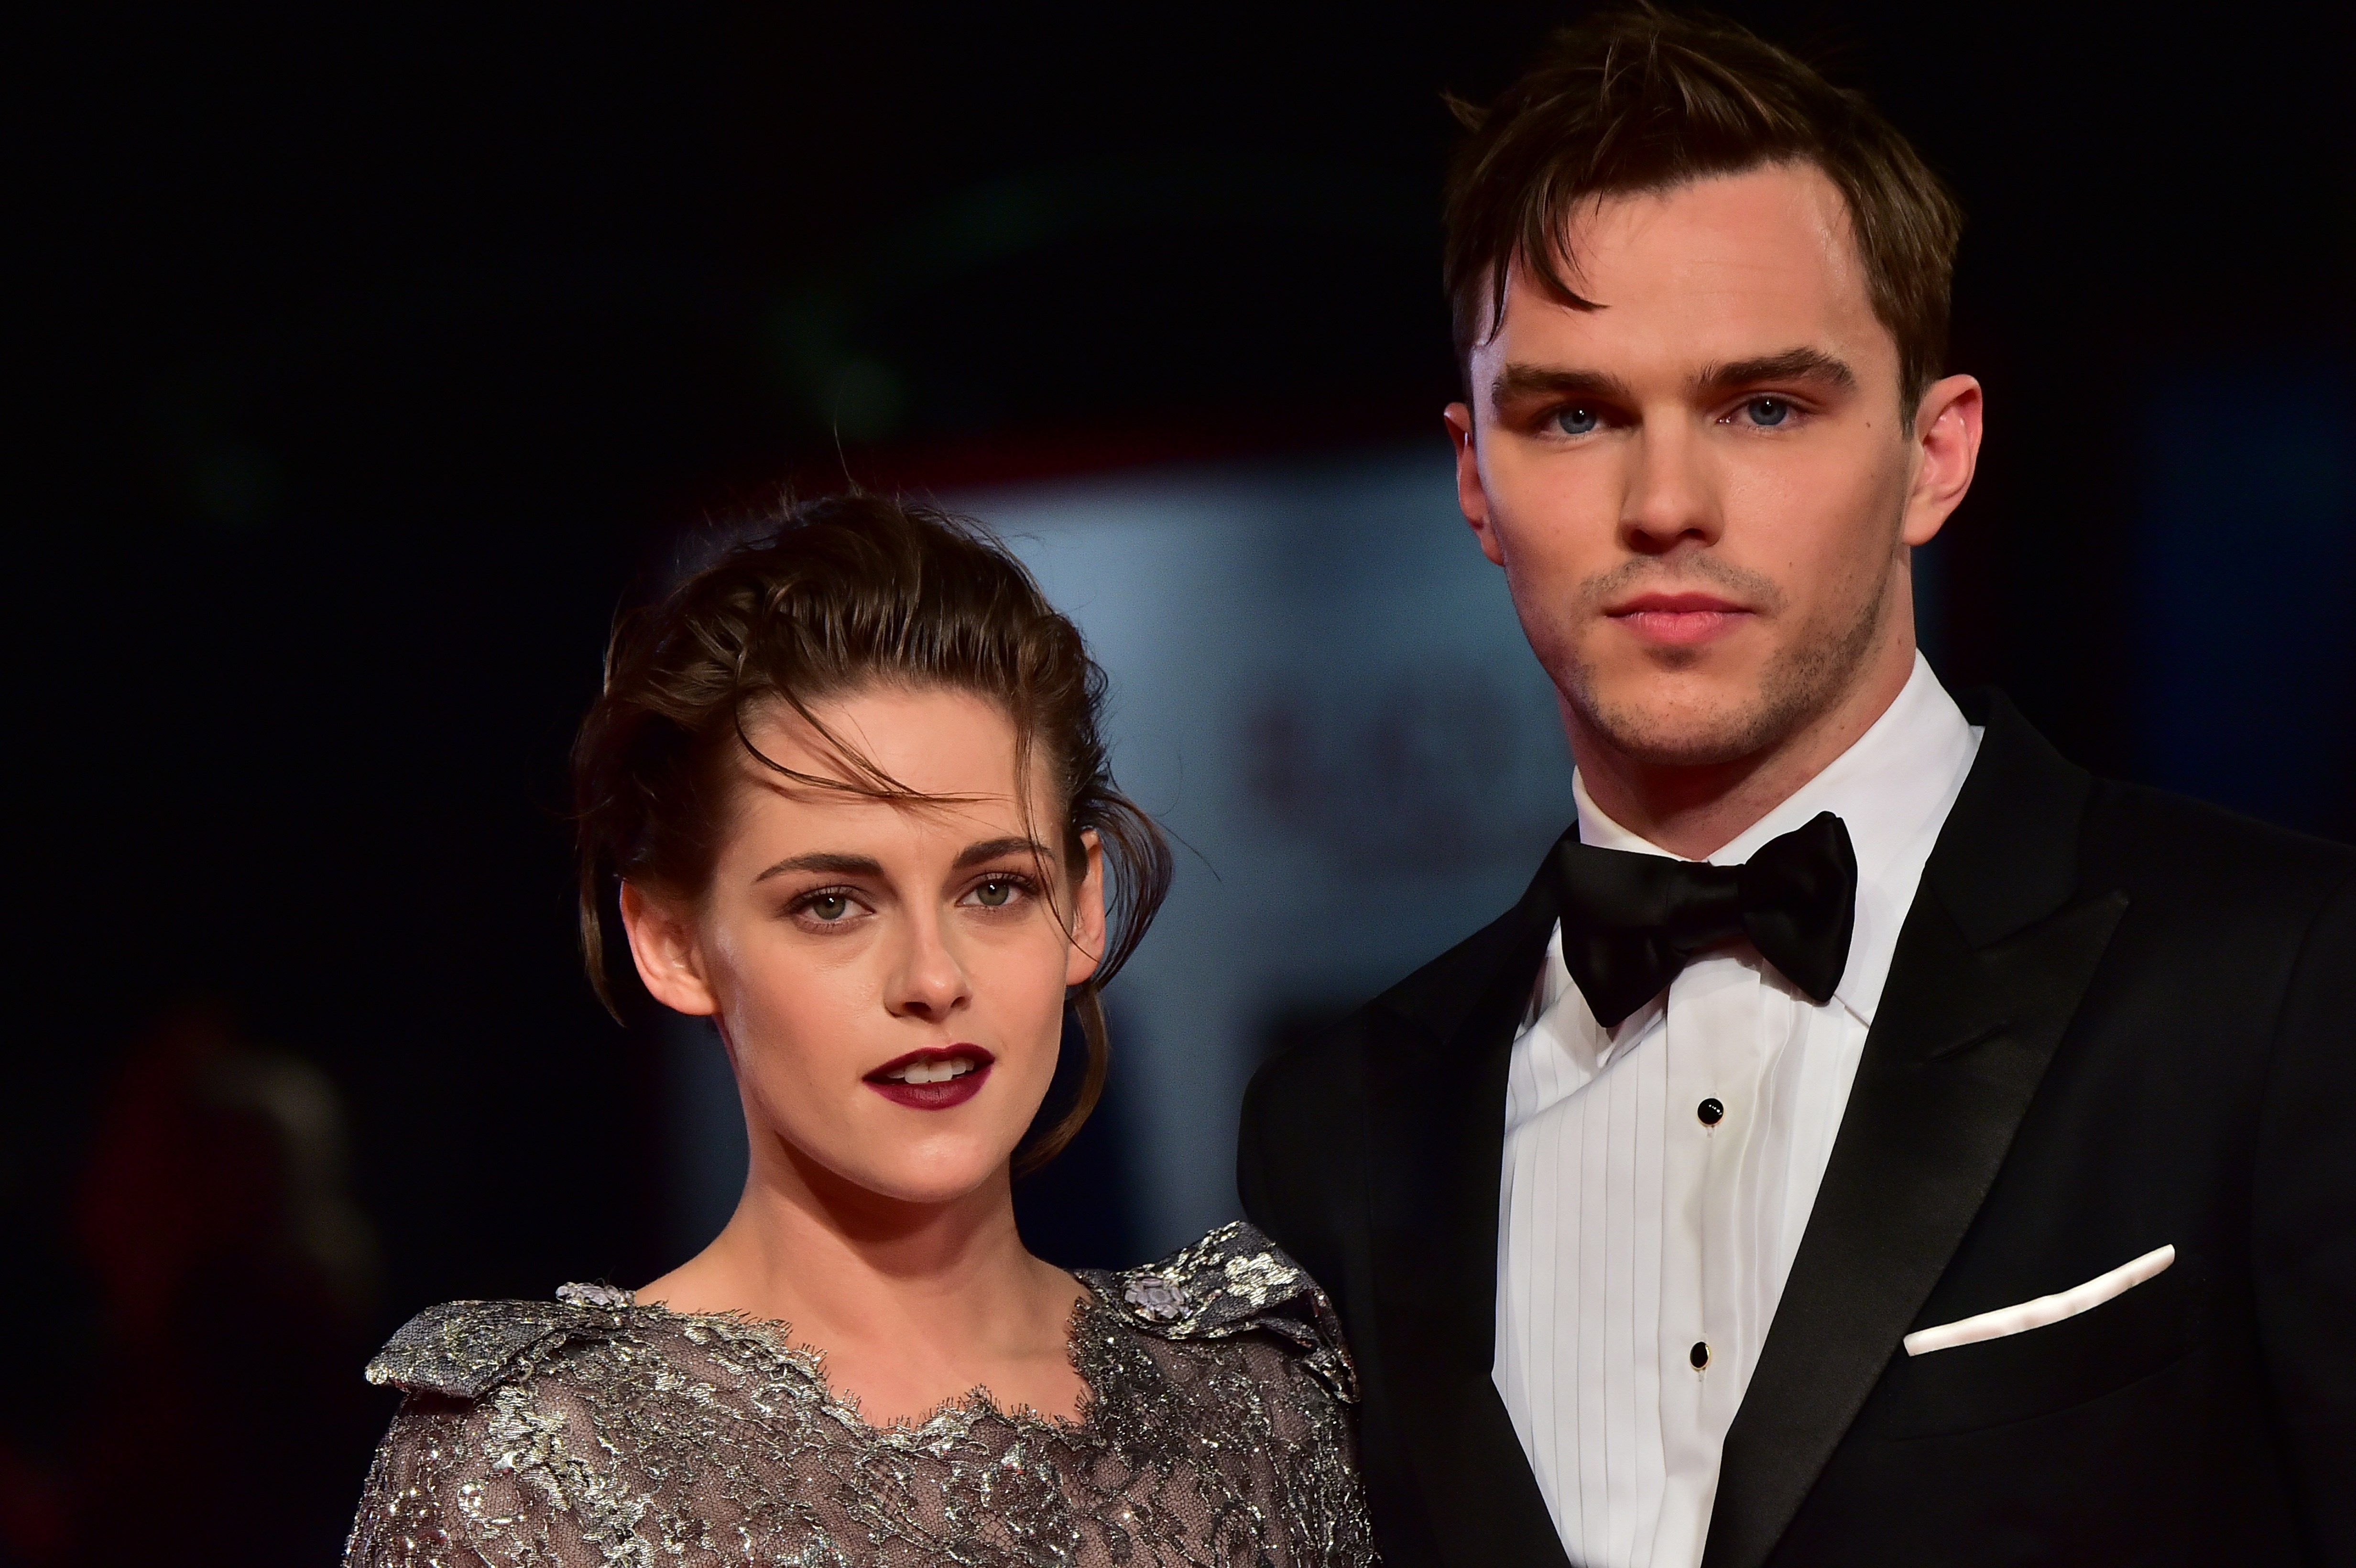 Kristen Stewart and Nicholas Hoult gush about each other's 'passion' in Equals featurette